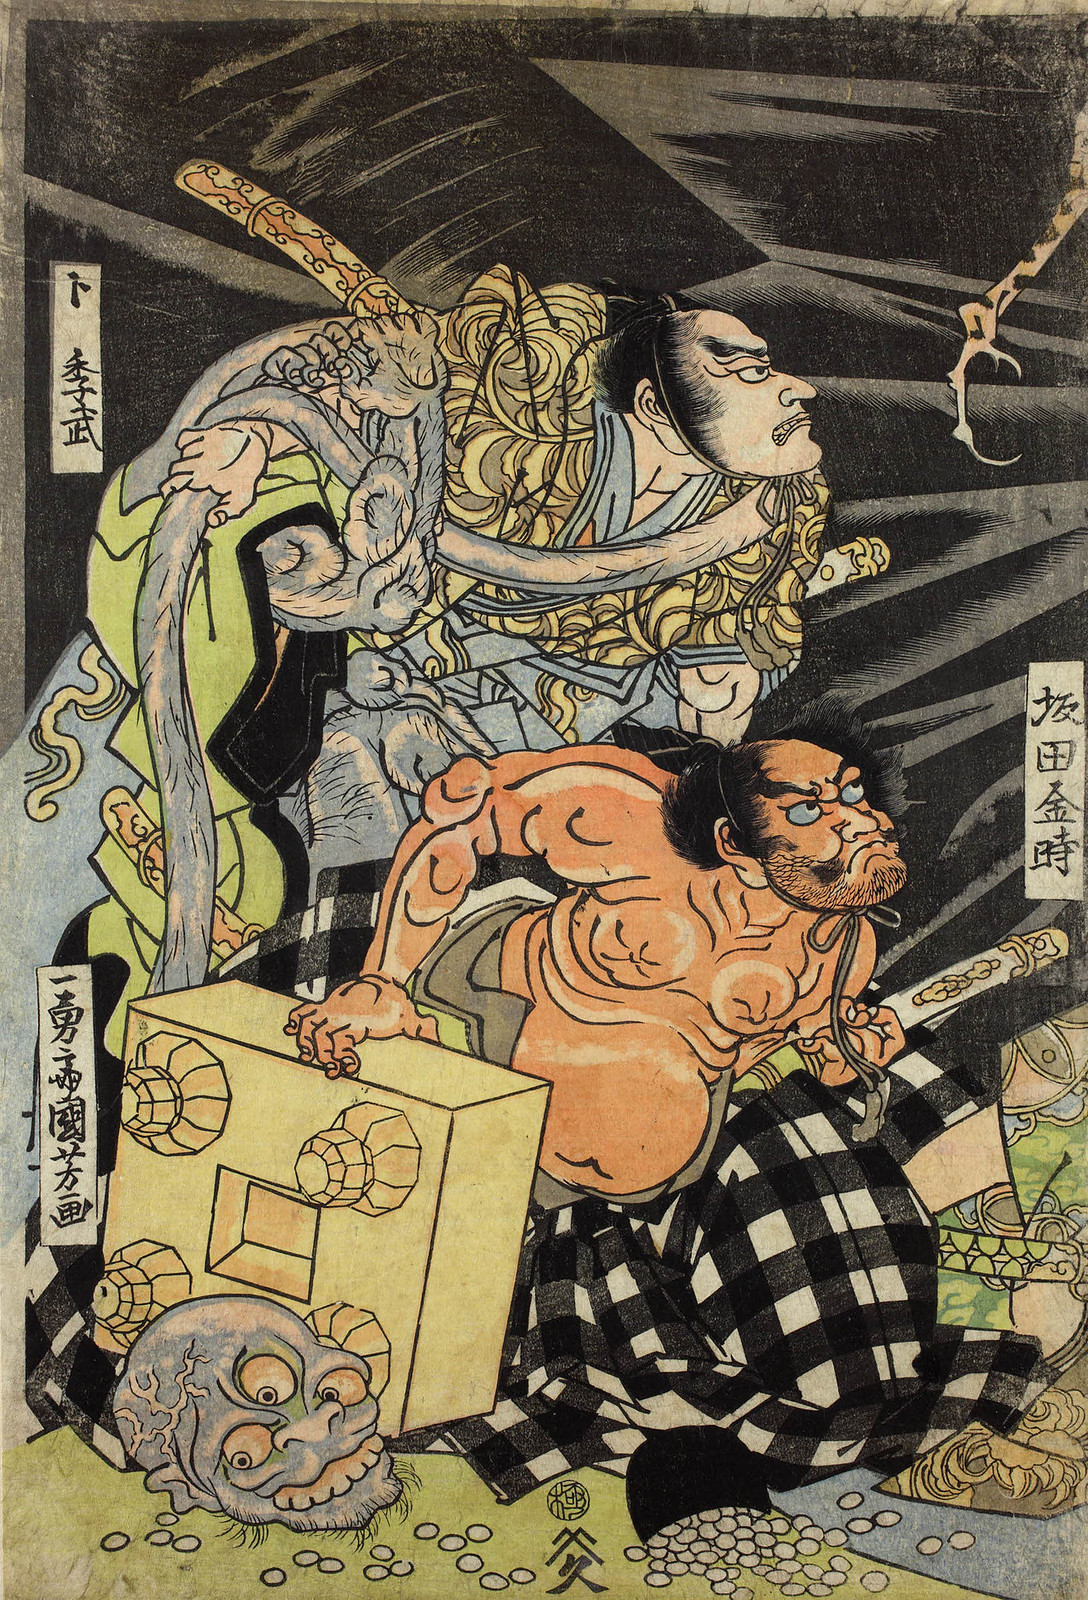 Utagawa Kuniyoshi - Minamoto no Yorimitsu fighting demon spider, with Usui no Sadamitsu, Watanabe no Tsuna, Urabe no Suetake with Sakata Kintoki with go-board. 18th c (left panel)